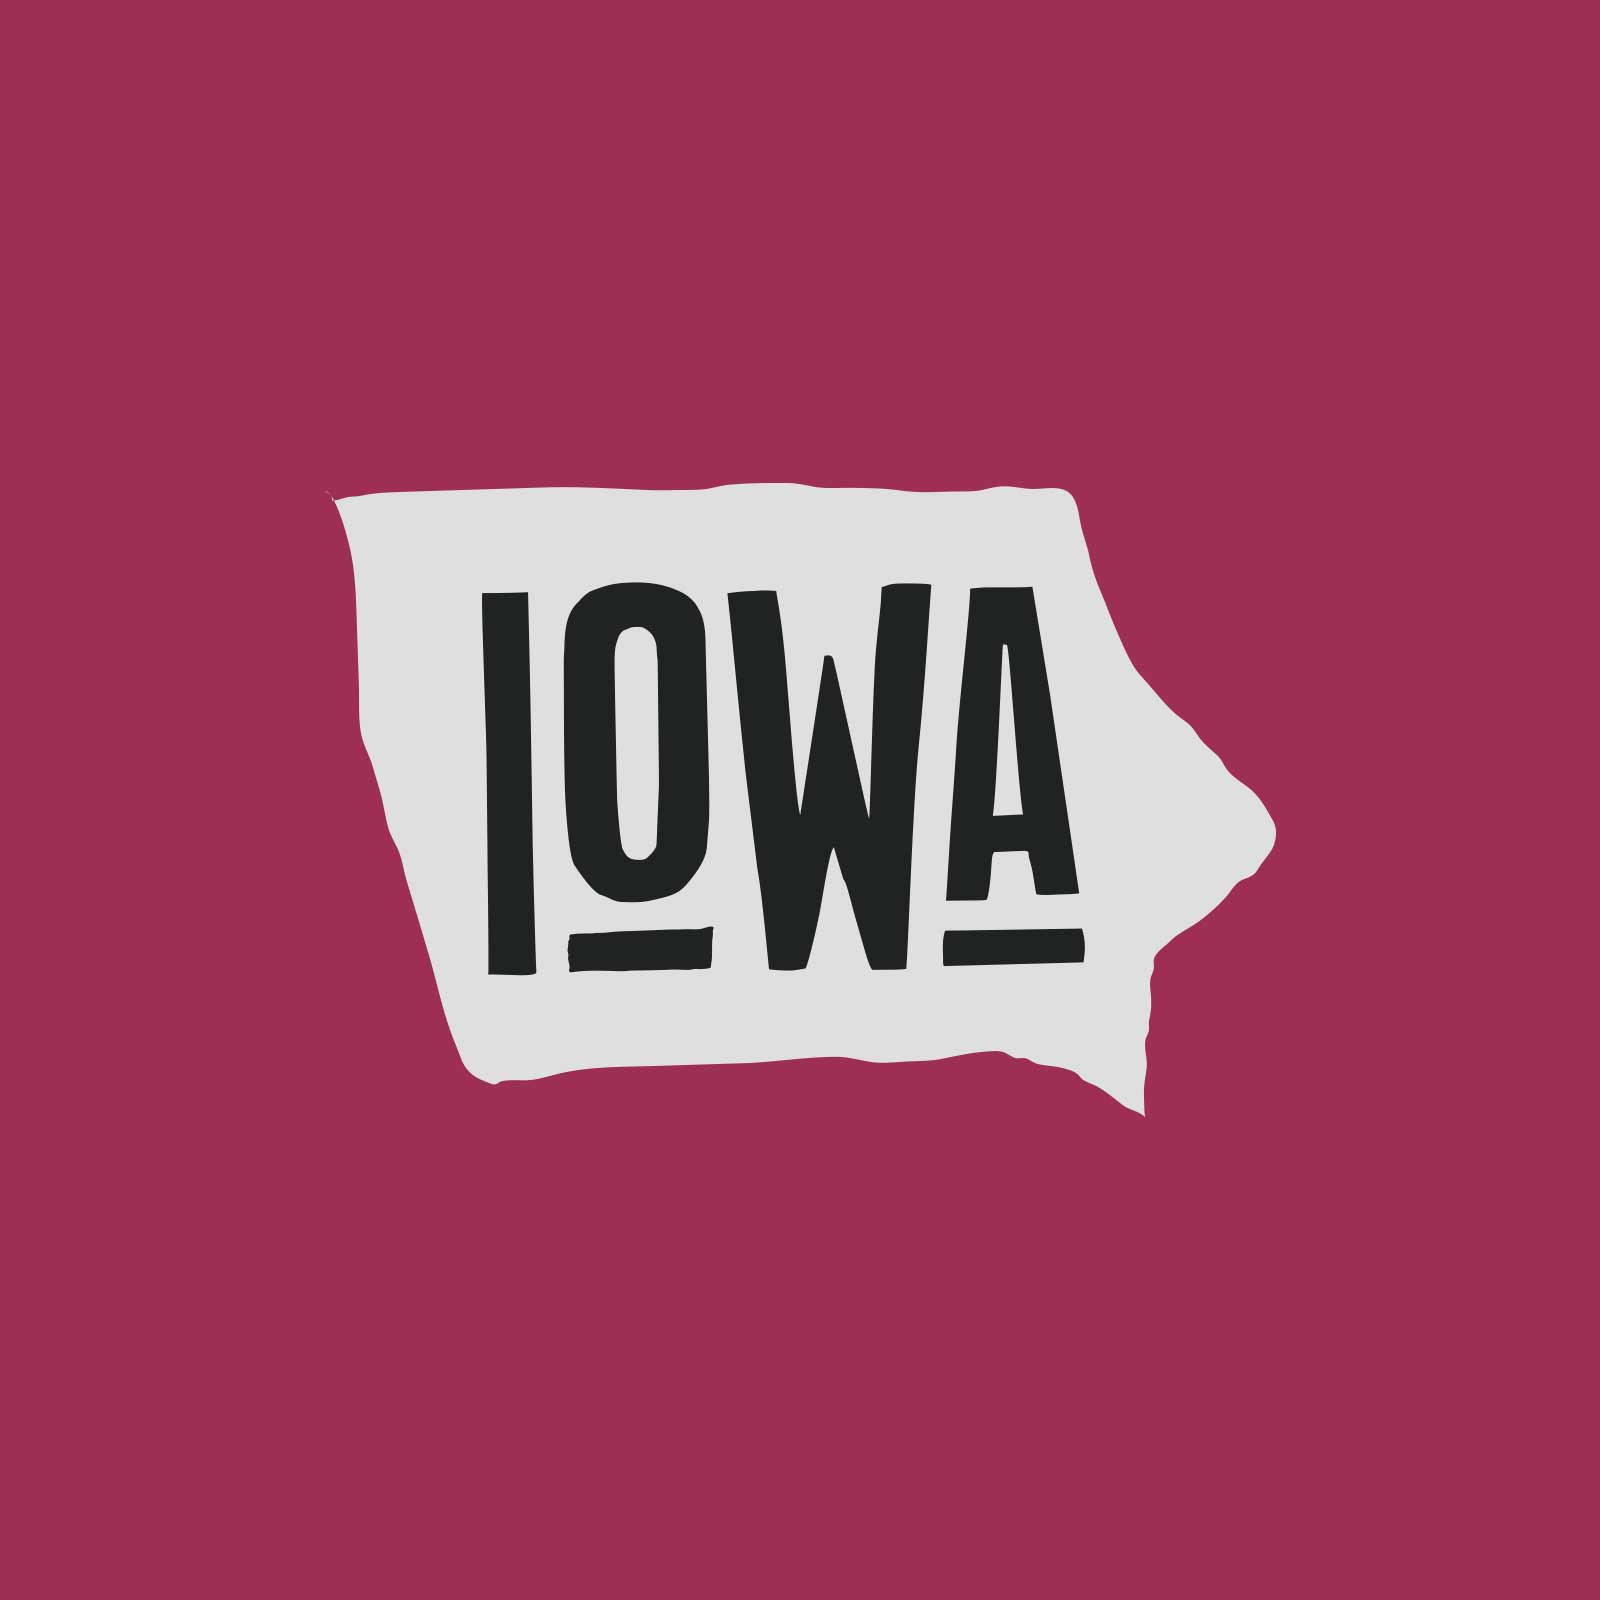 How to start a business in Iowa